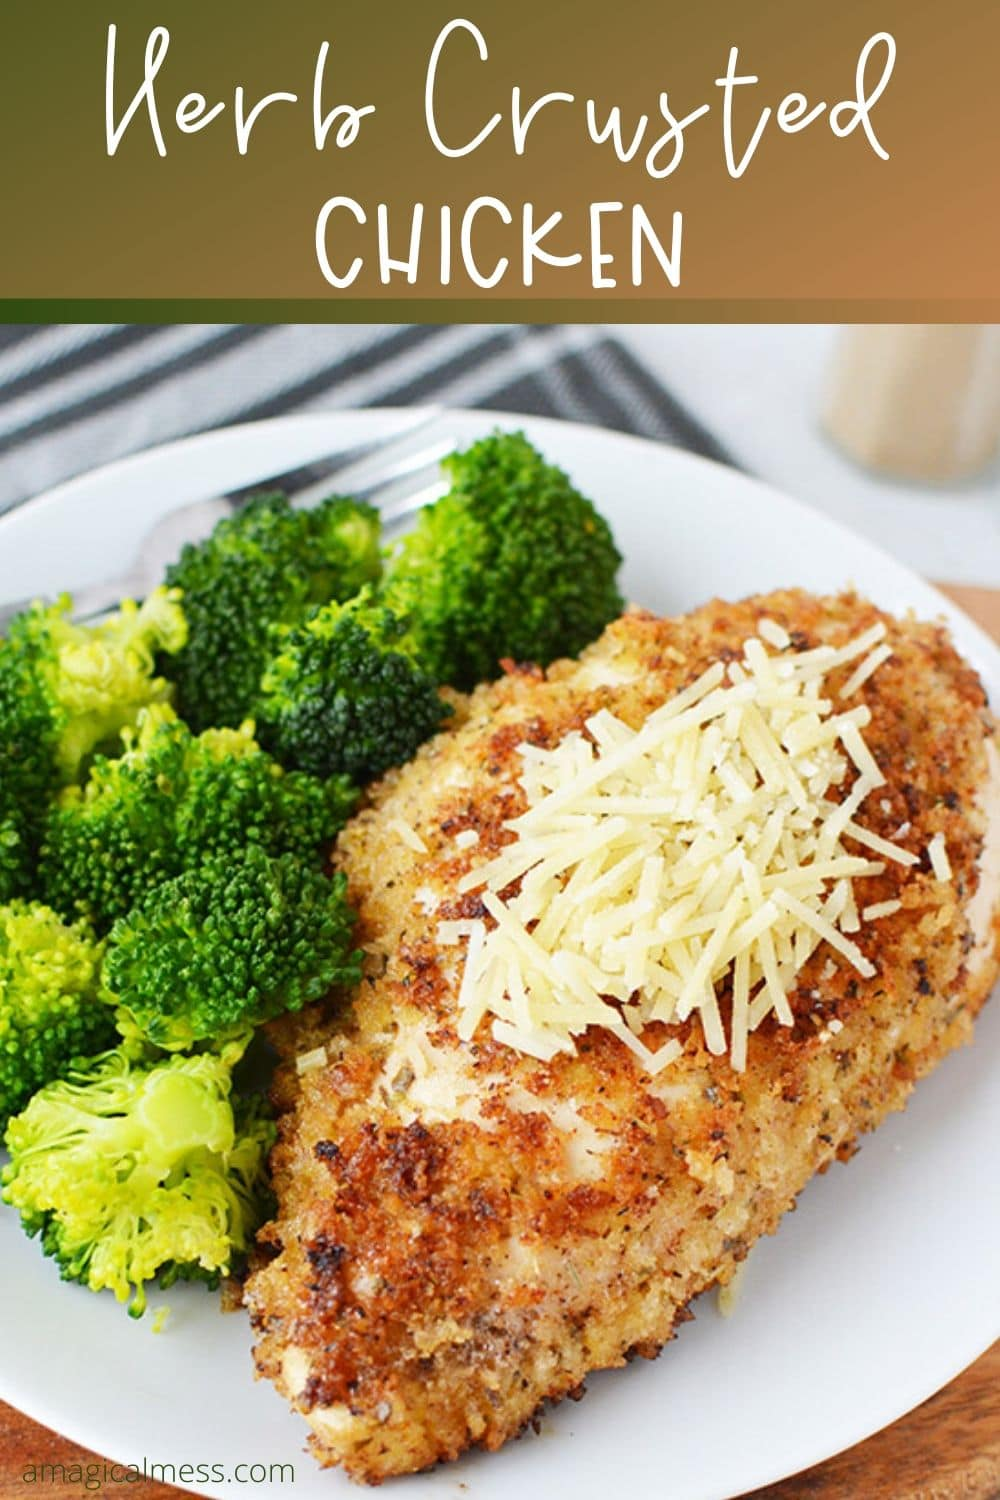 Herb crusted chicken dinner on a plate